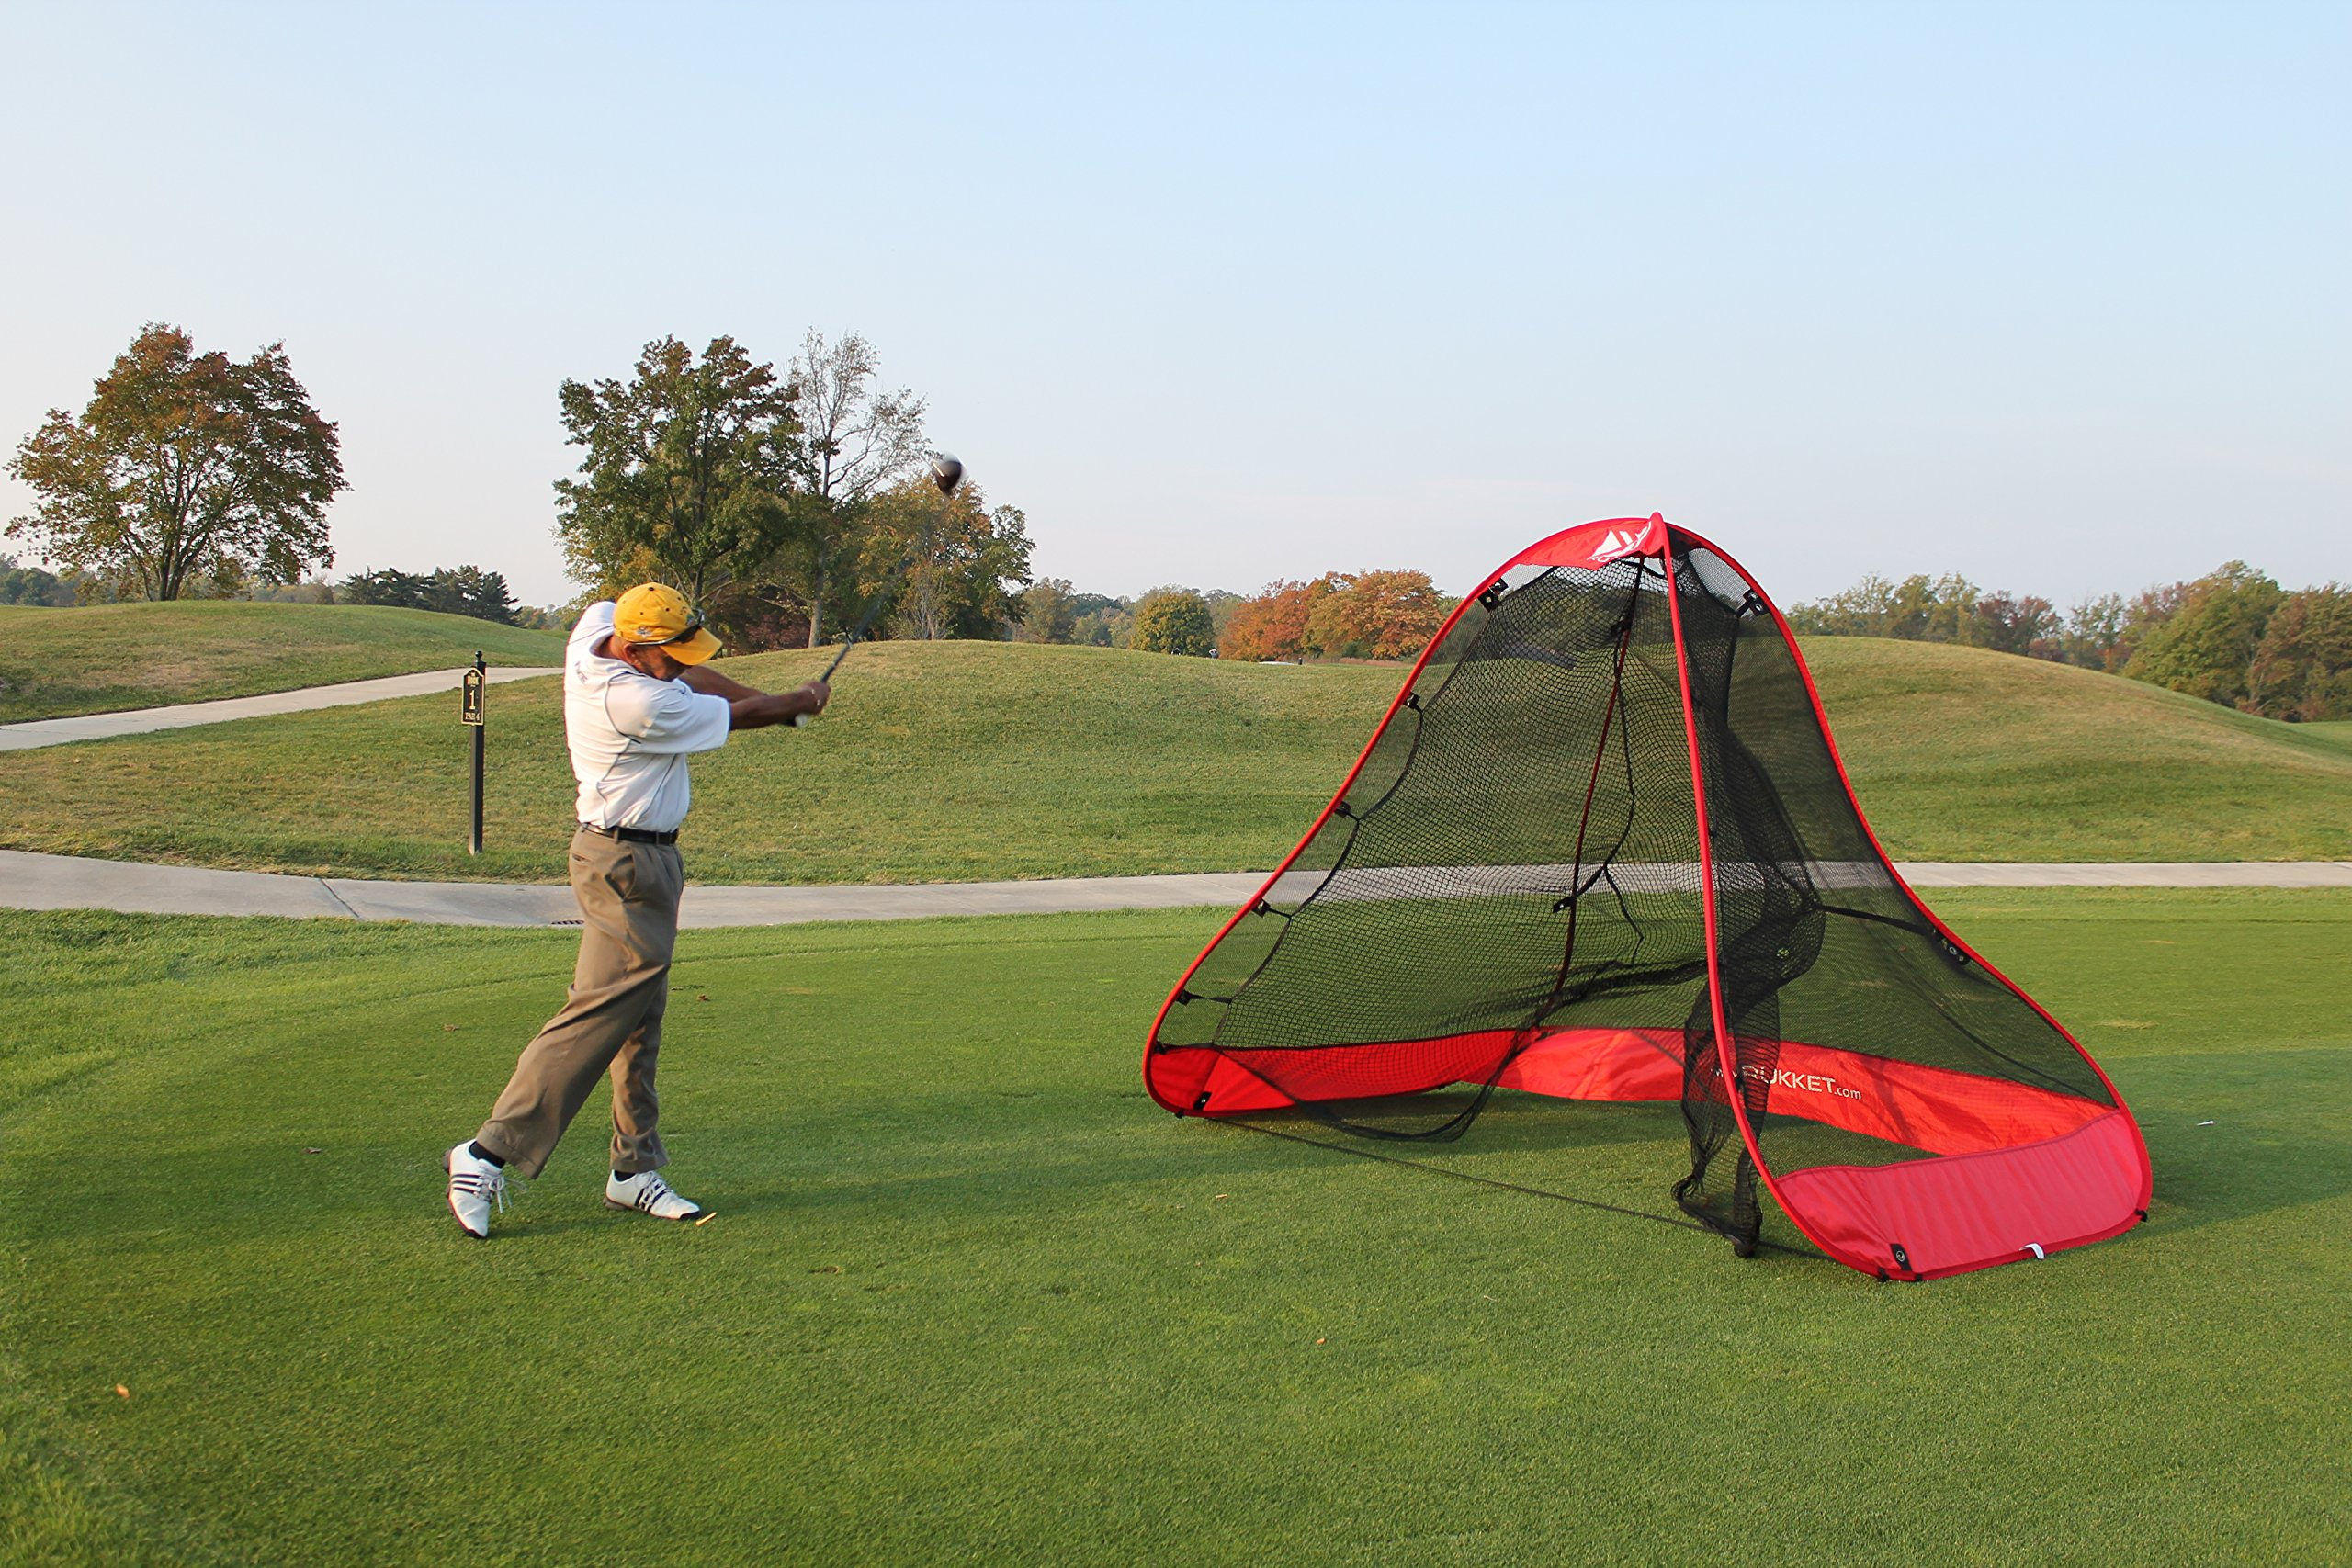 Rukket 4pc Golf Bundle | 10x7ft Portable Driving Net | Chipping Target | Tri-Turf Hitting Mat | Carry Bag | Practice Outdoor and Indoor by Rukket Sports (Image #9)